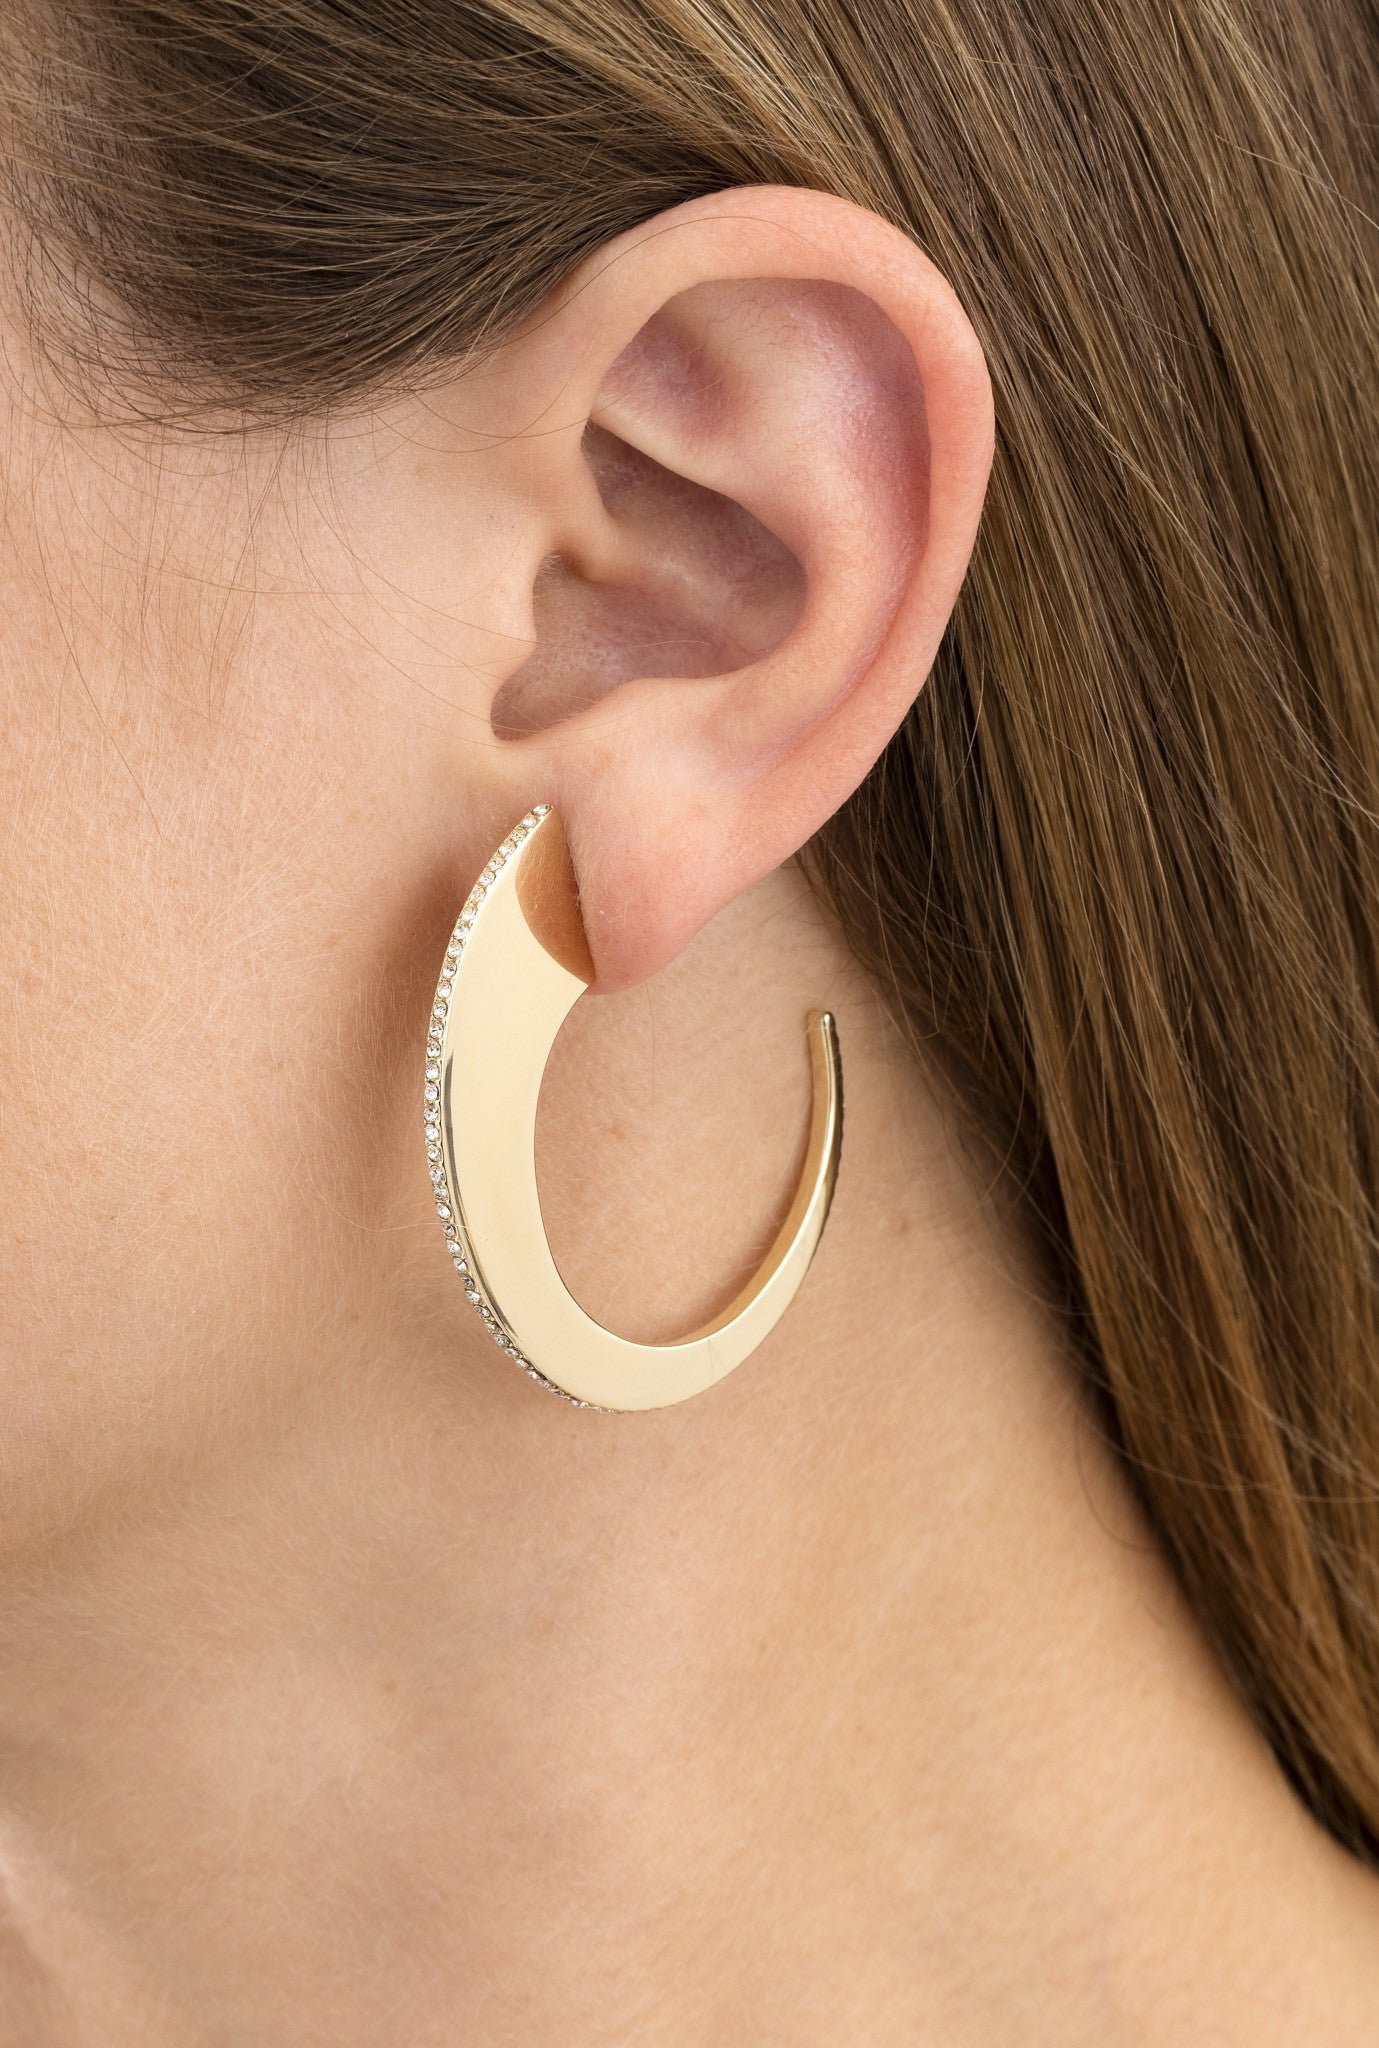 Gold Slice Hoop by Sarah Magid Jewelry